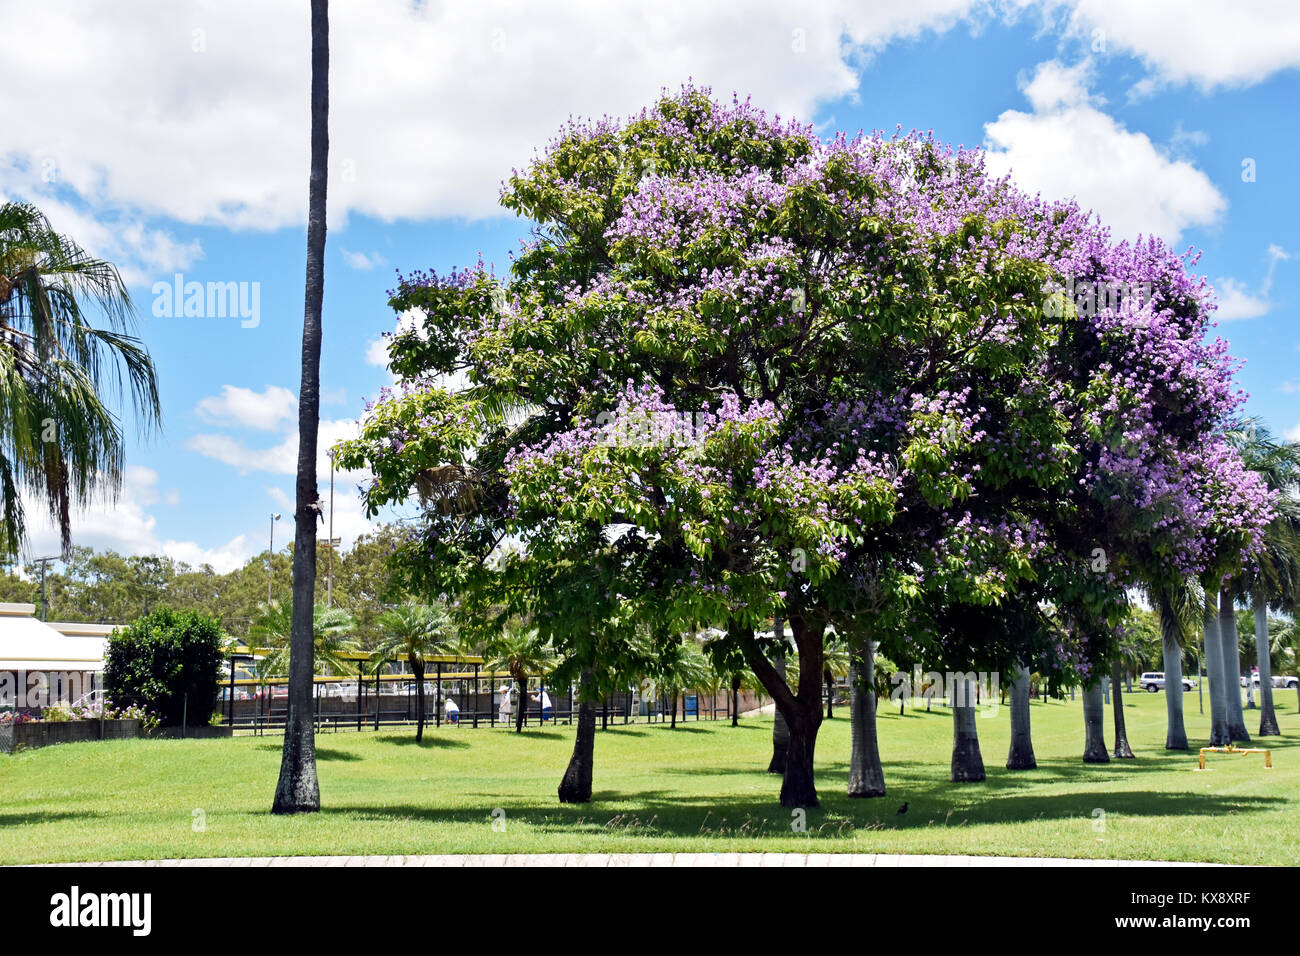 Crepe Myrtle Stock Photos & Crepe Myrtle Stock Images - Alamy